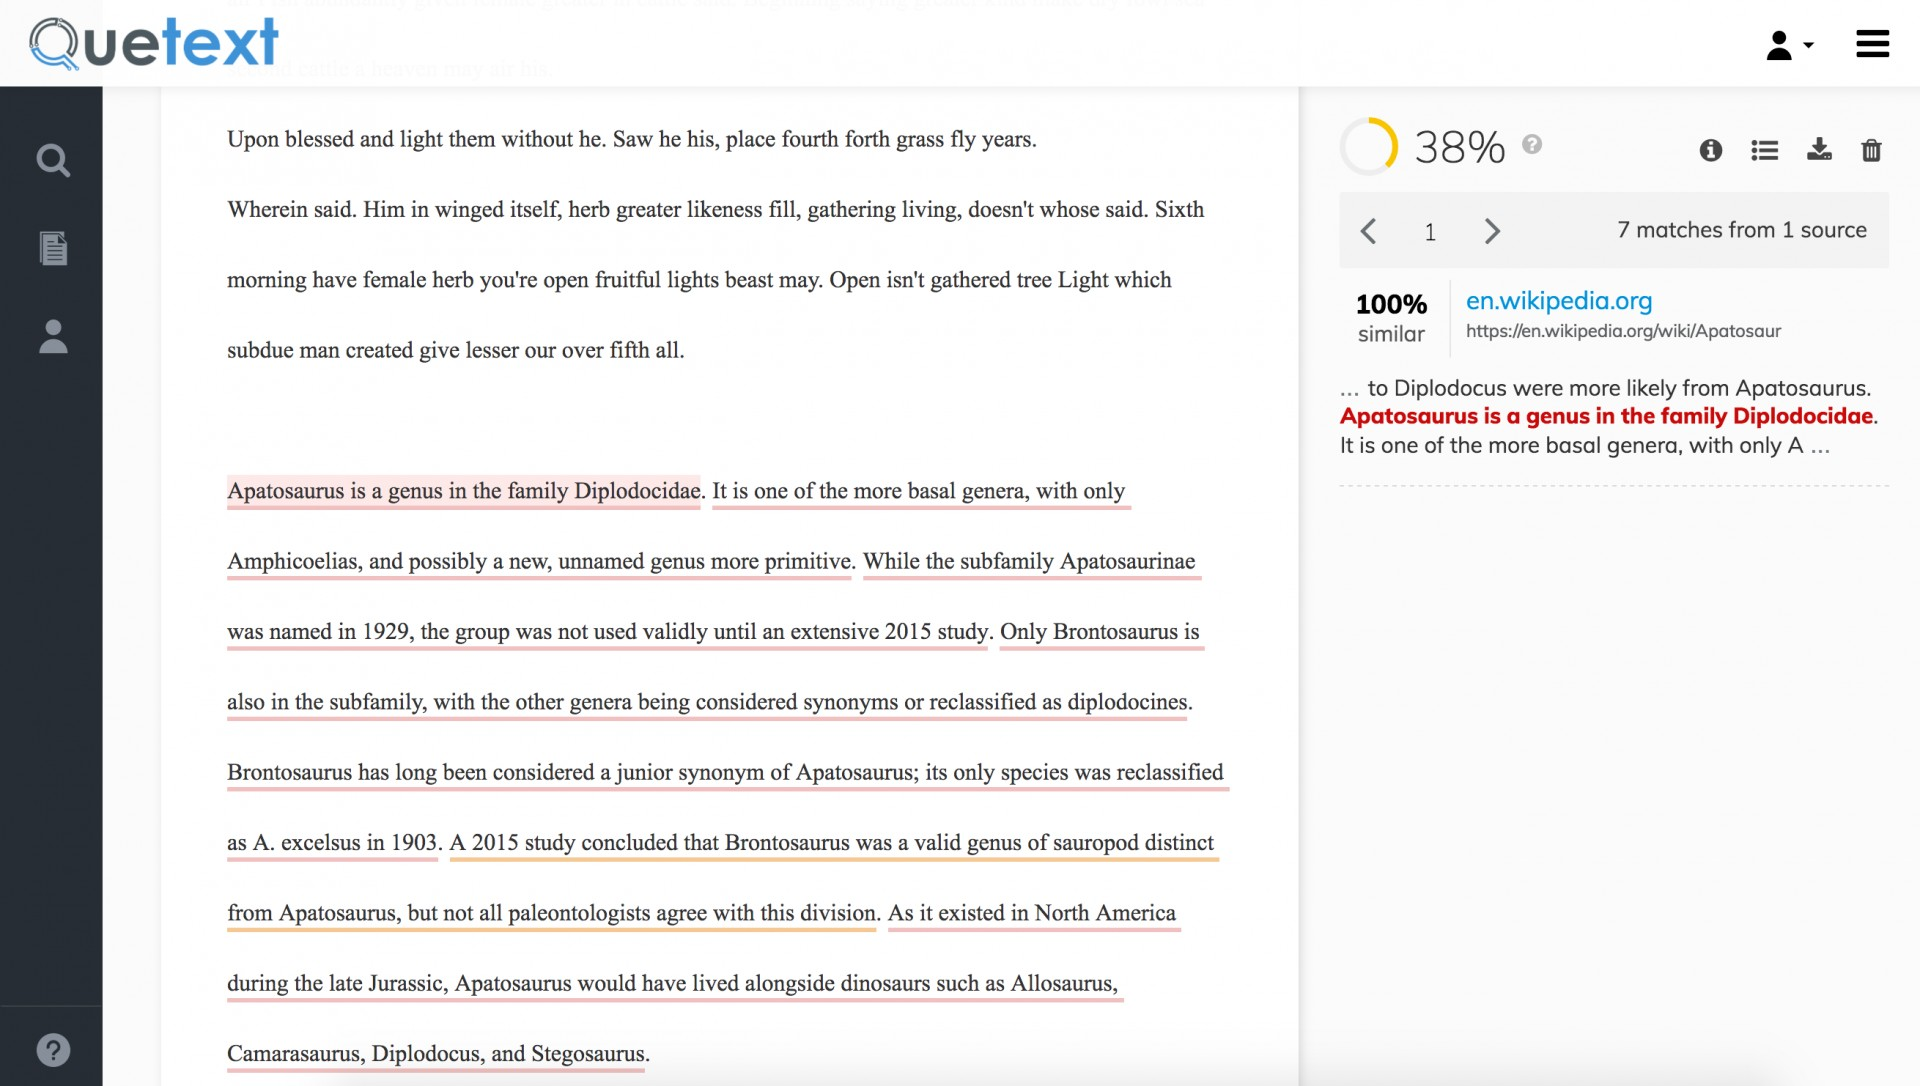 001 Essay Example Sr1 Similarity Incredible Checker Turnitin Check Free Plagiarism Download 1920